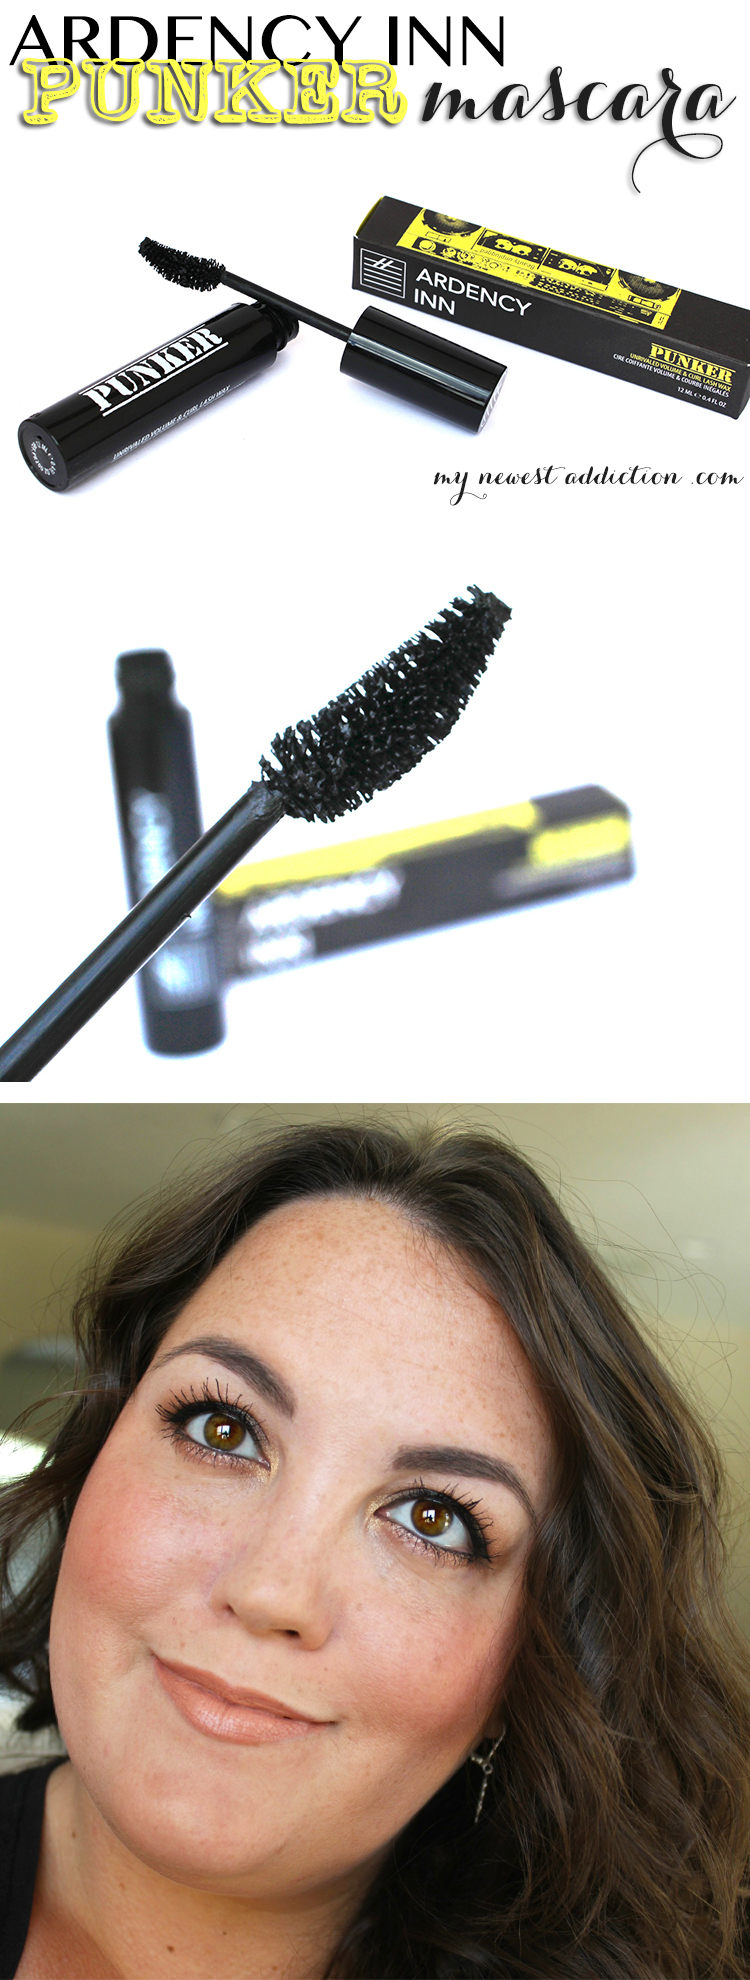 Ardency Inn Punker Mascara